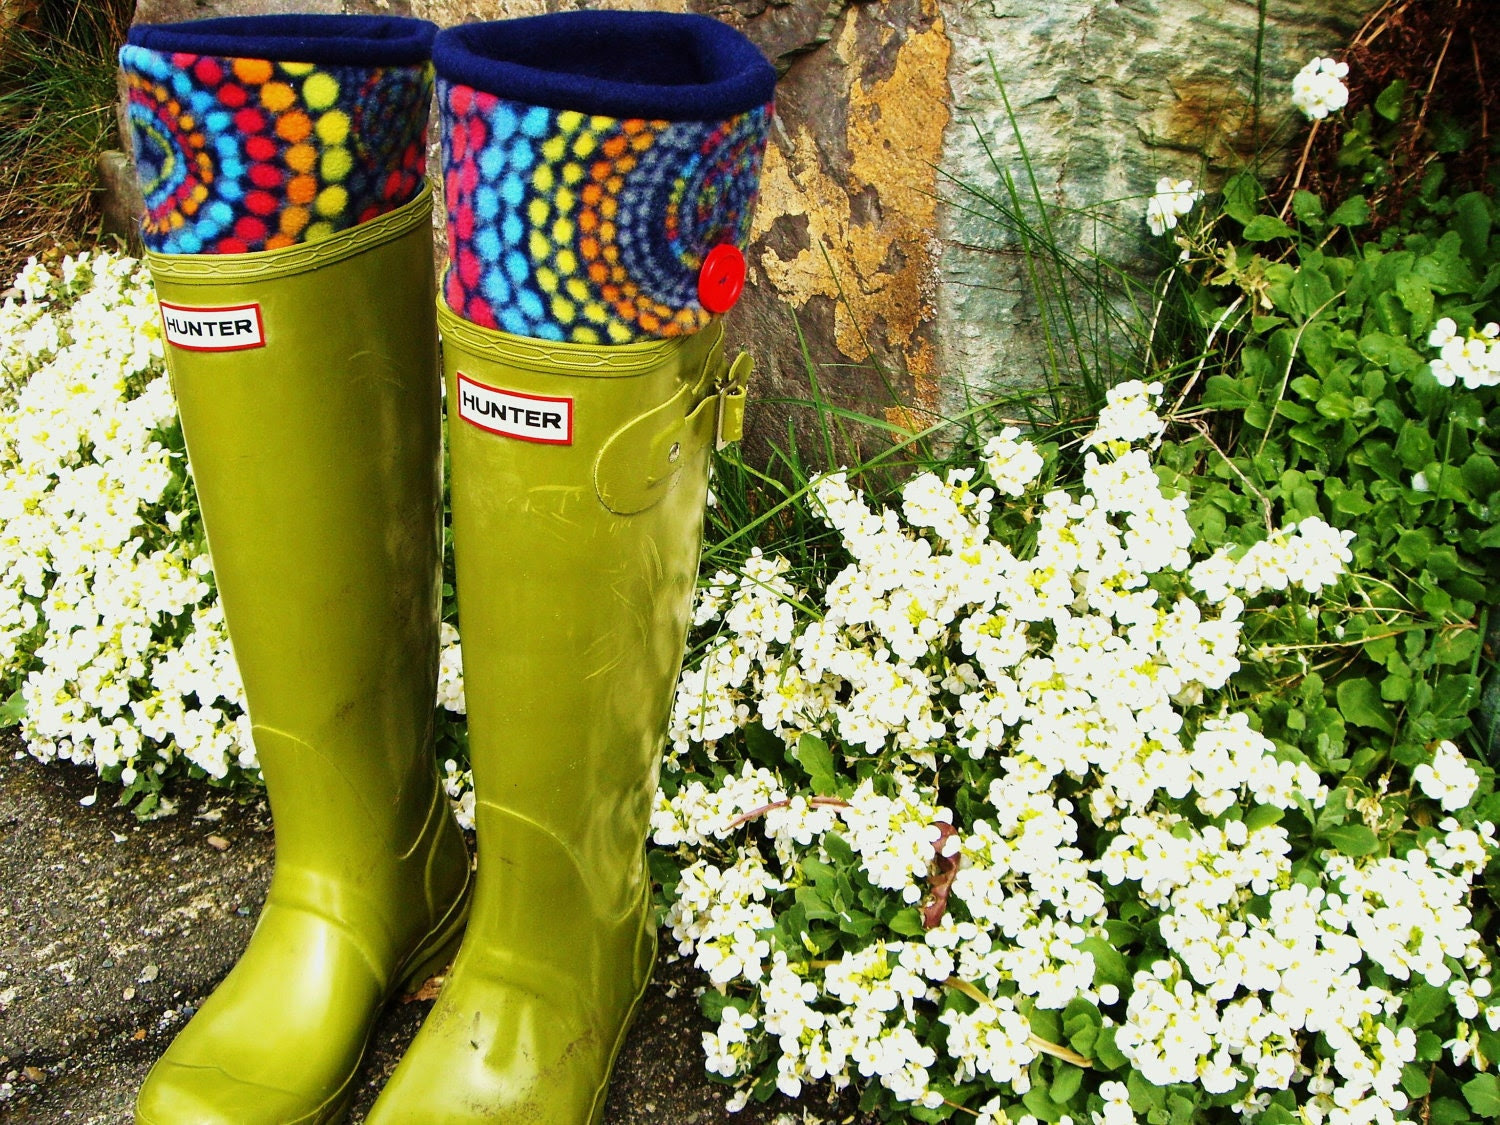 SLUGS Fleece Rain Boot Liners Navy In Rainbow Geometric Circle Pattern Cuff, Spring Fashion, Gardening Style, Outdoors (Sm/Med 6-8 Boot)